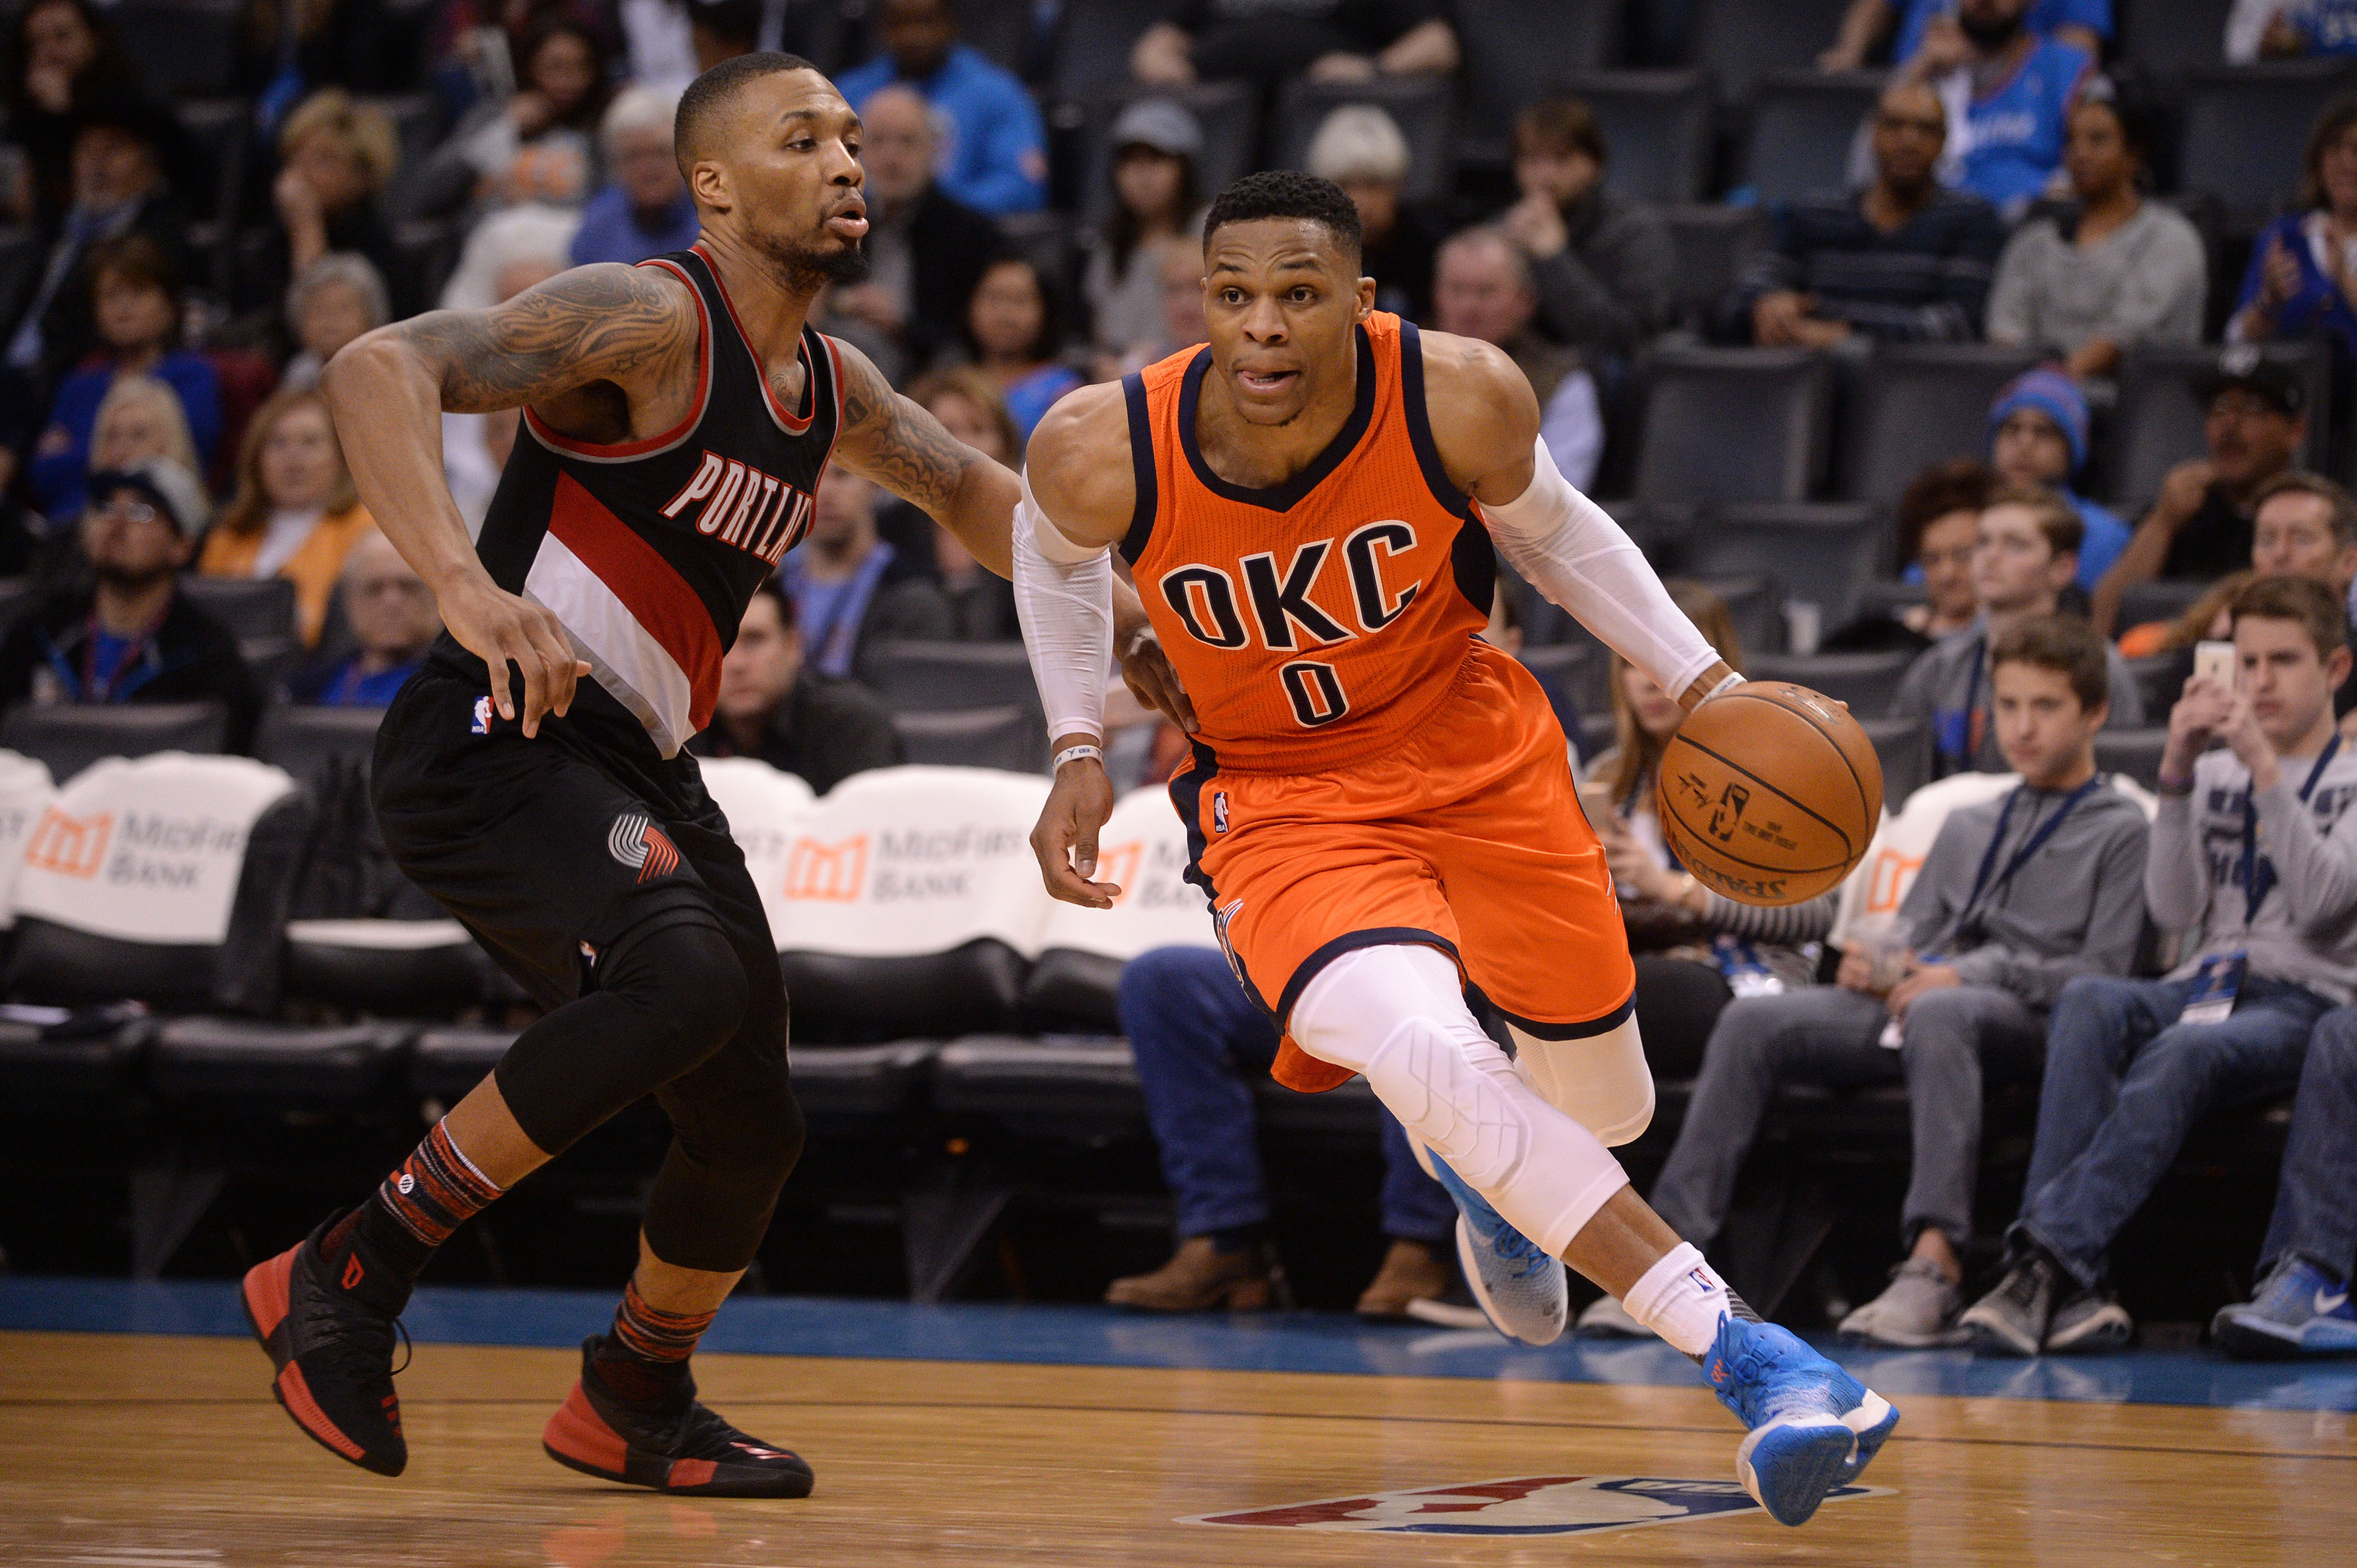 Feb 5, 2017; Oklahoma City, OK, USA; Oklahoma City Thunder guard Russell Westbrook (0) drives to the basket in front of Portland Trail Blazers guard Damian Lillard (0) during the third quarter at Chesapeake Energy Arena. Mandatory Credit: Mark D. Smith-USA TODAY Sports